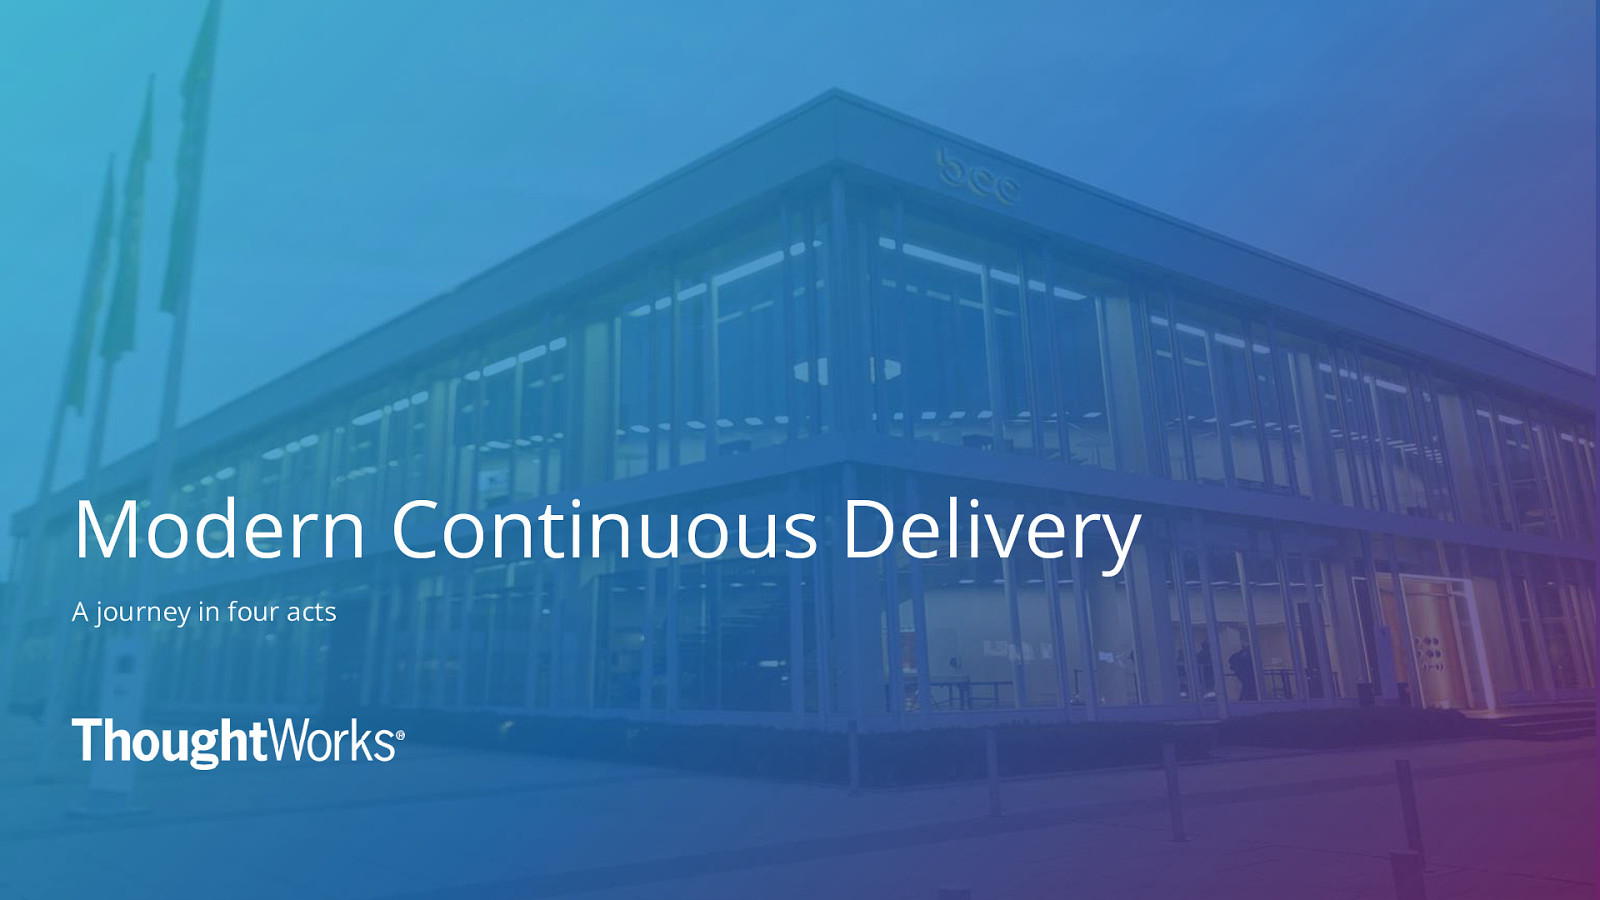 Modern Continuous Delivery